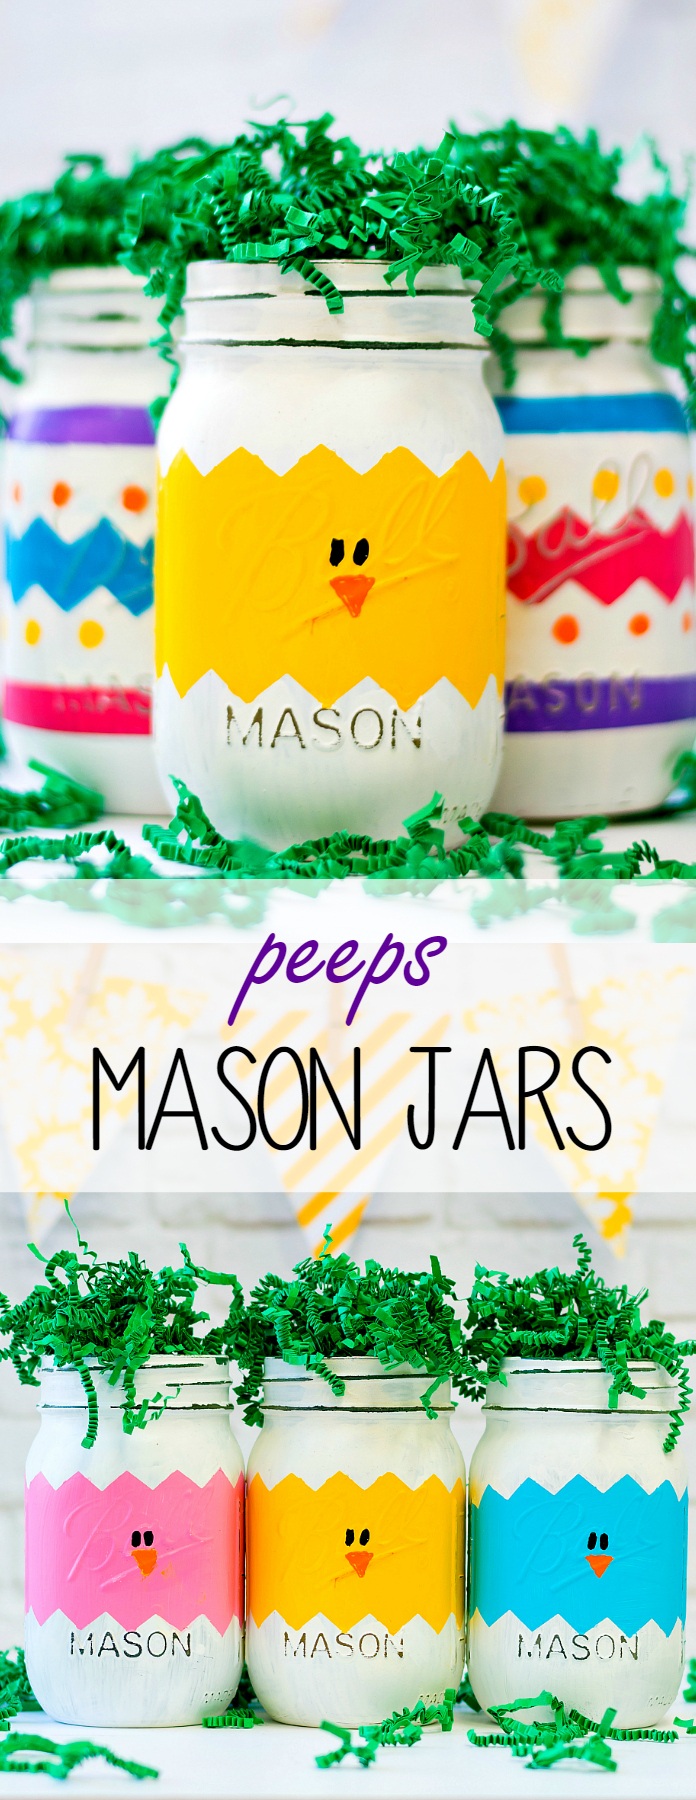 Peeps Mason Jars for Easter: Mason Jar Craft Ideas